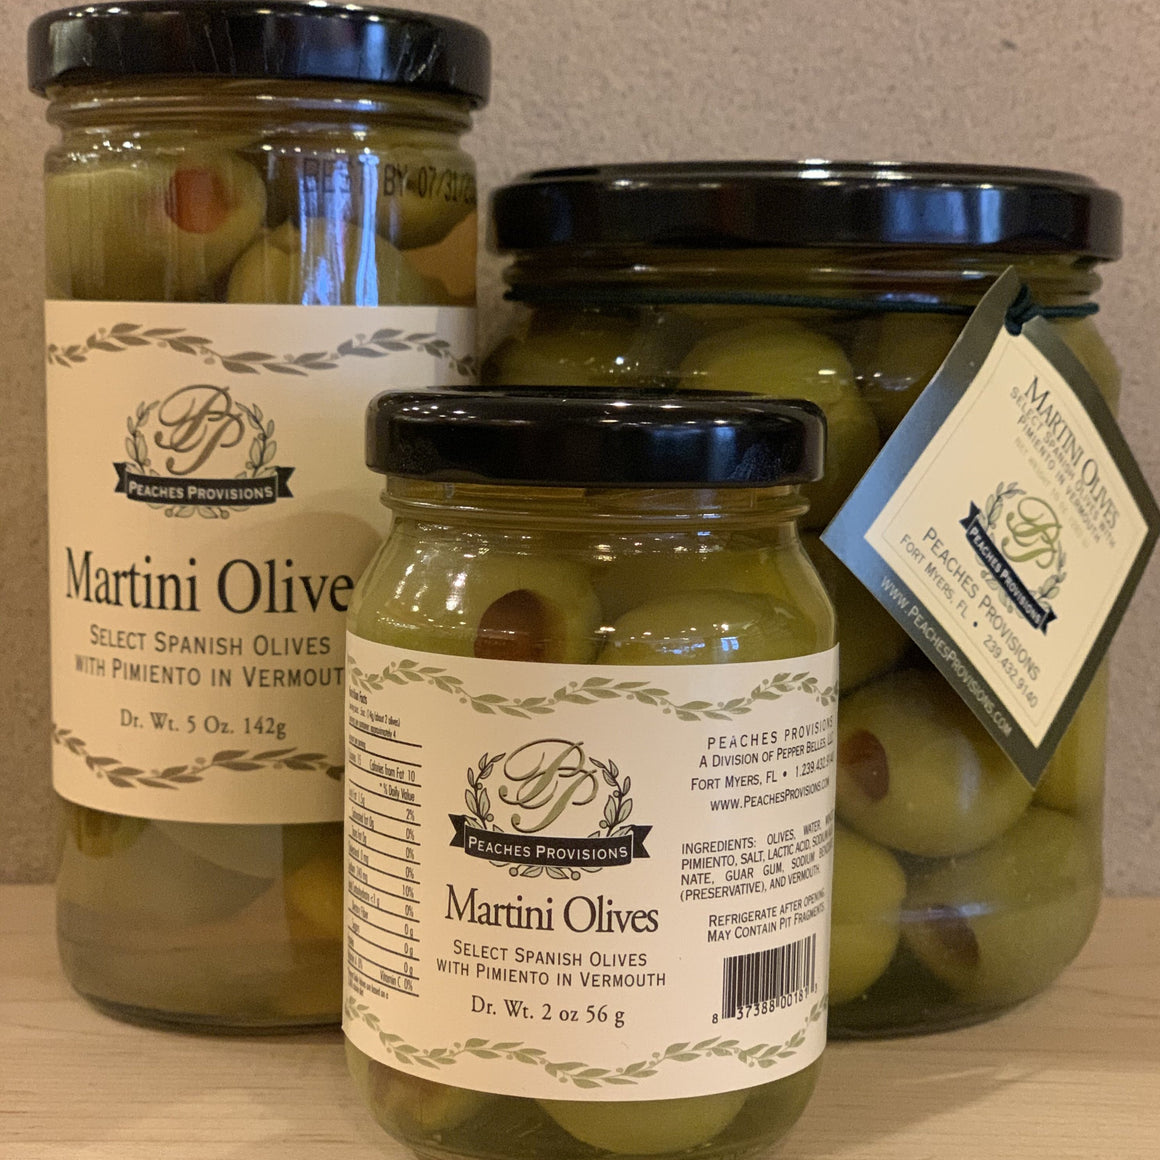 Martini Olives - A Taste of Olive